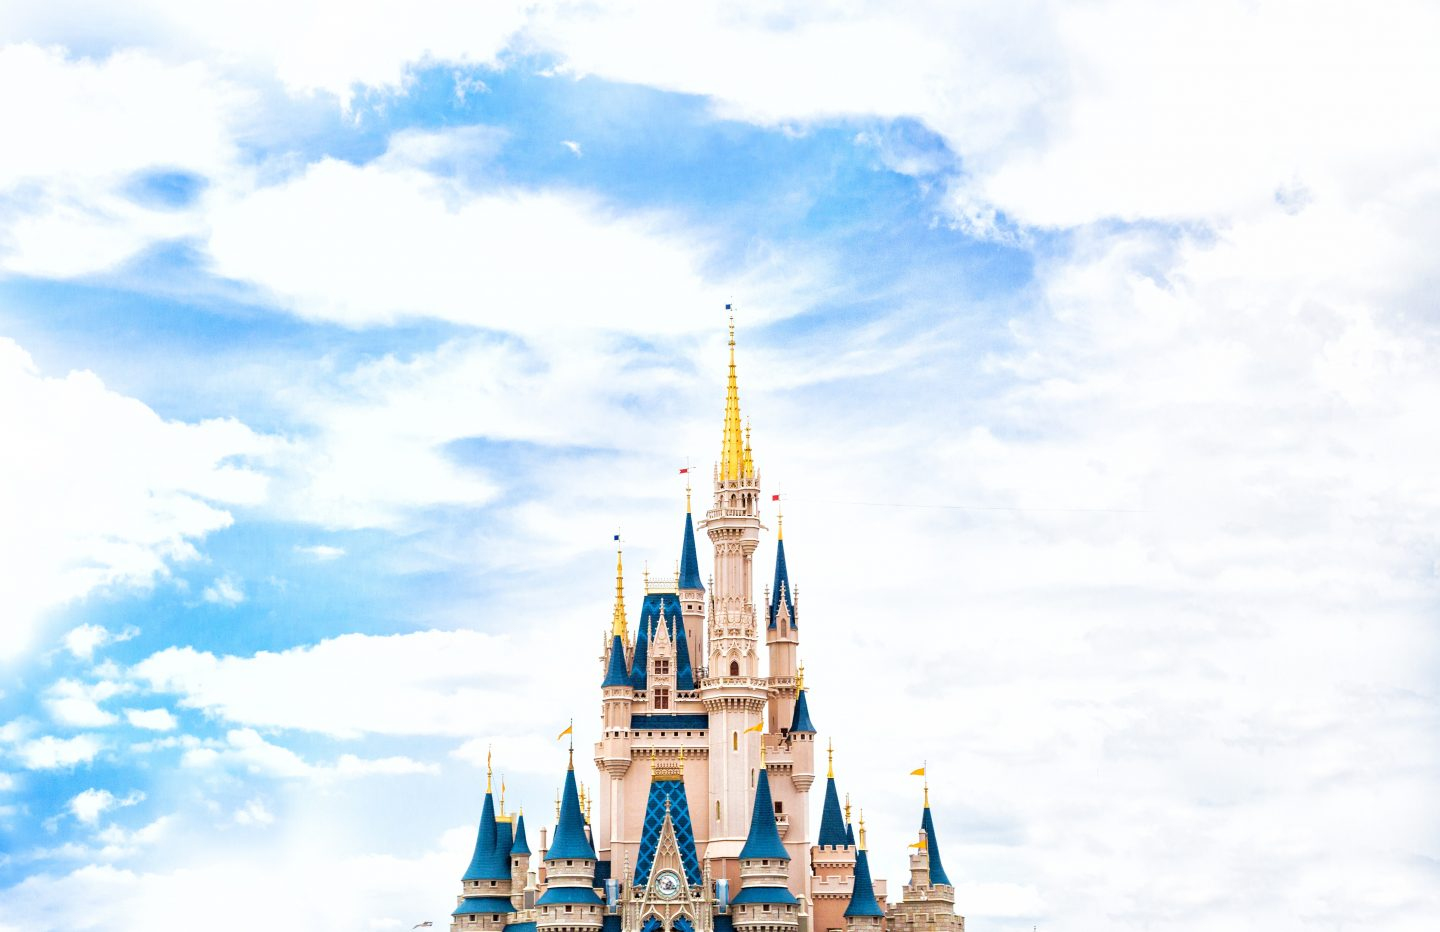 DISNEYWORLD FLORIDA | TRAVEL BUCKETLIST | HAYLEYXMARTIN.COM